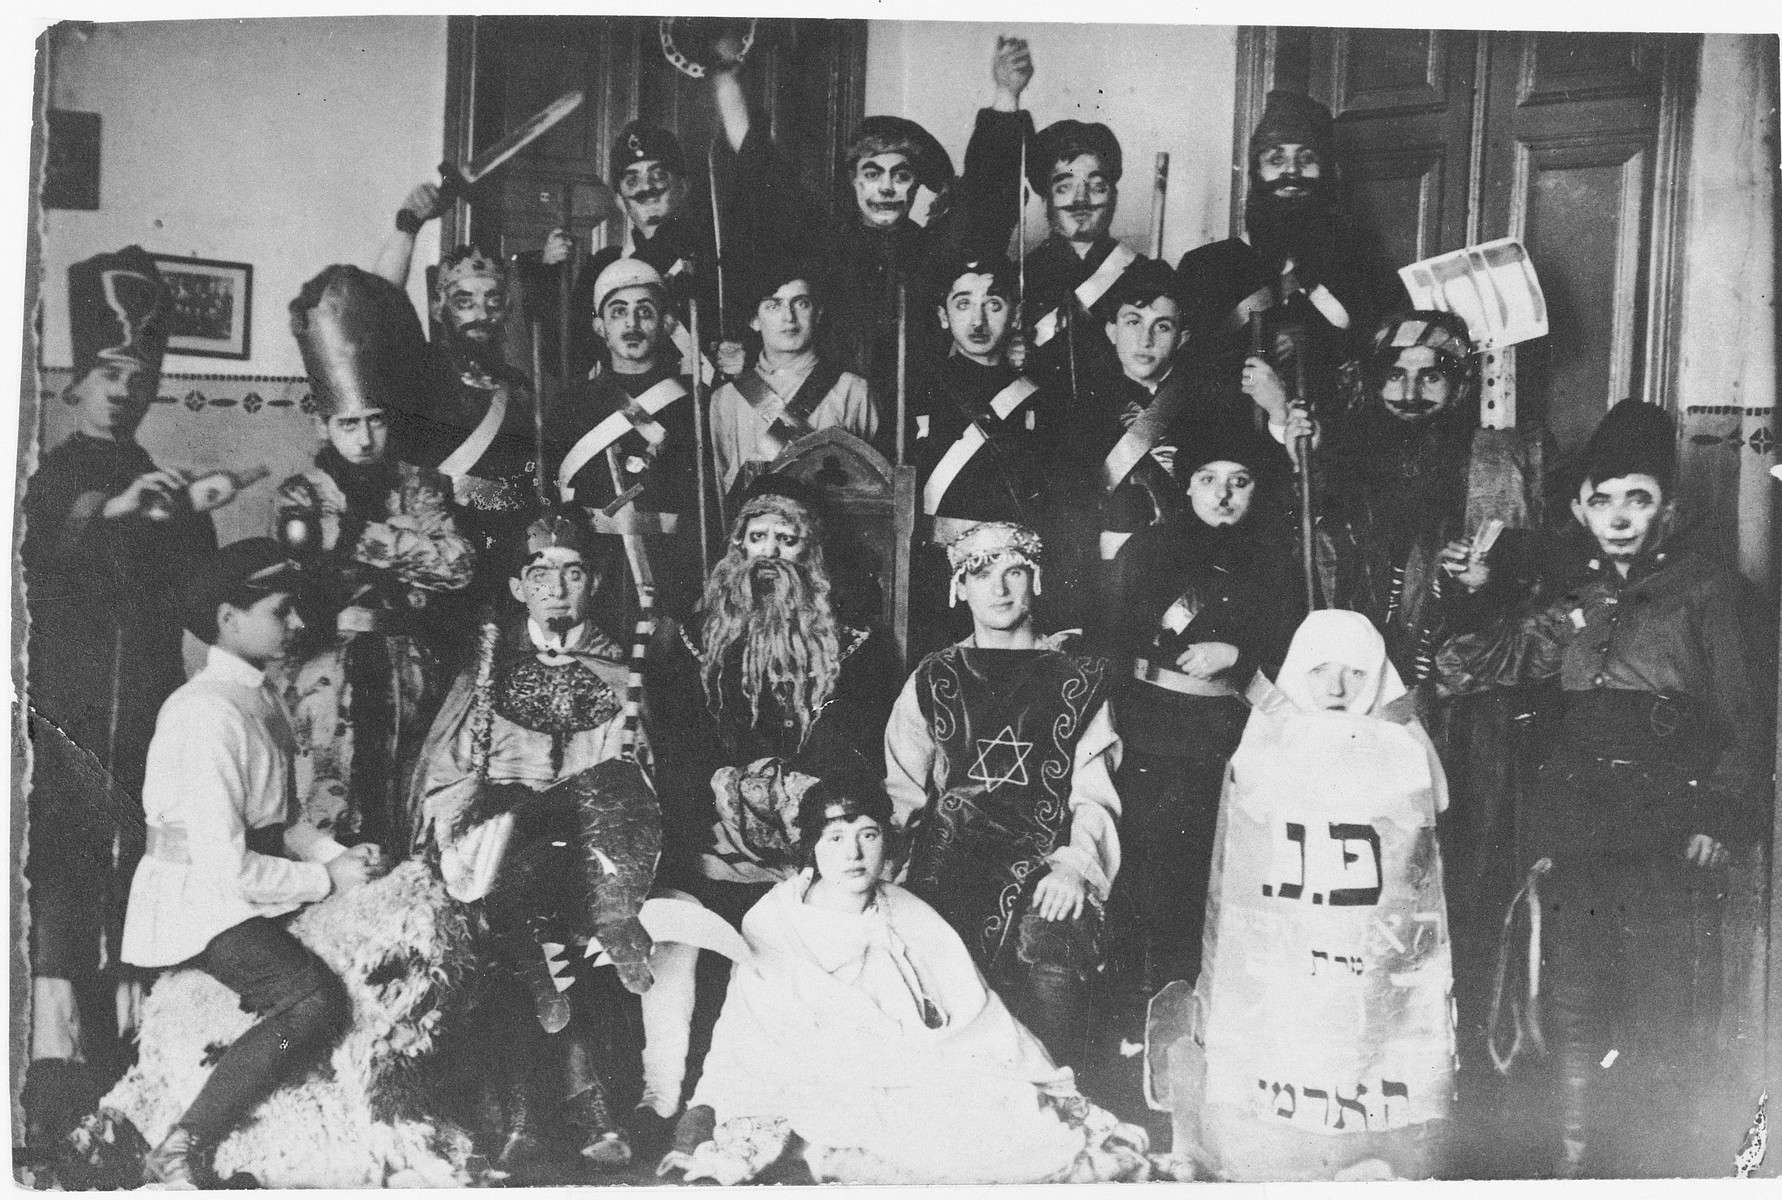 Students from the Vilner Lerer Seminar (Yiddish Teachers' Seminary) perform a Purim play.  Among those pictured are Y. Trupianski, Goldberg, Y. Mann, Rosenberg, Batke, Genia Kac (second from the right with Hebrew letters on her costume).